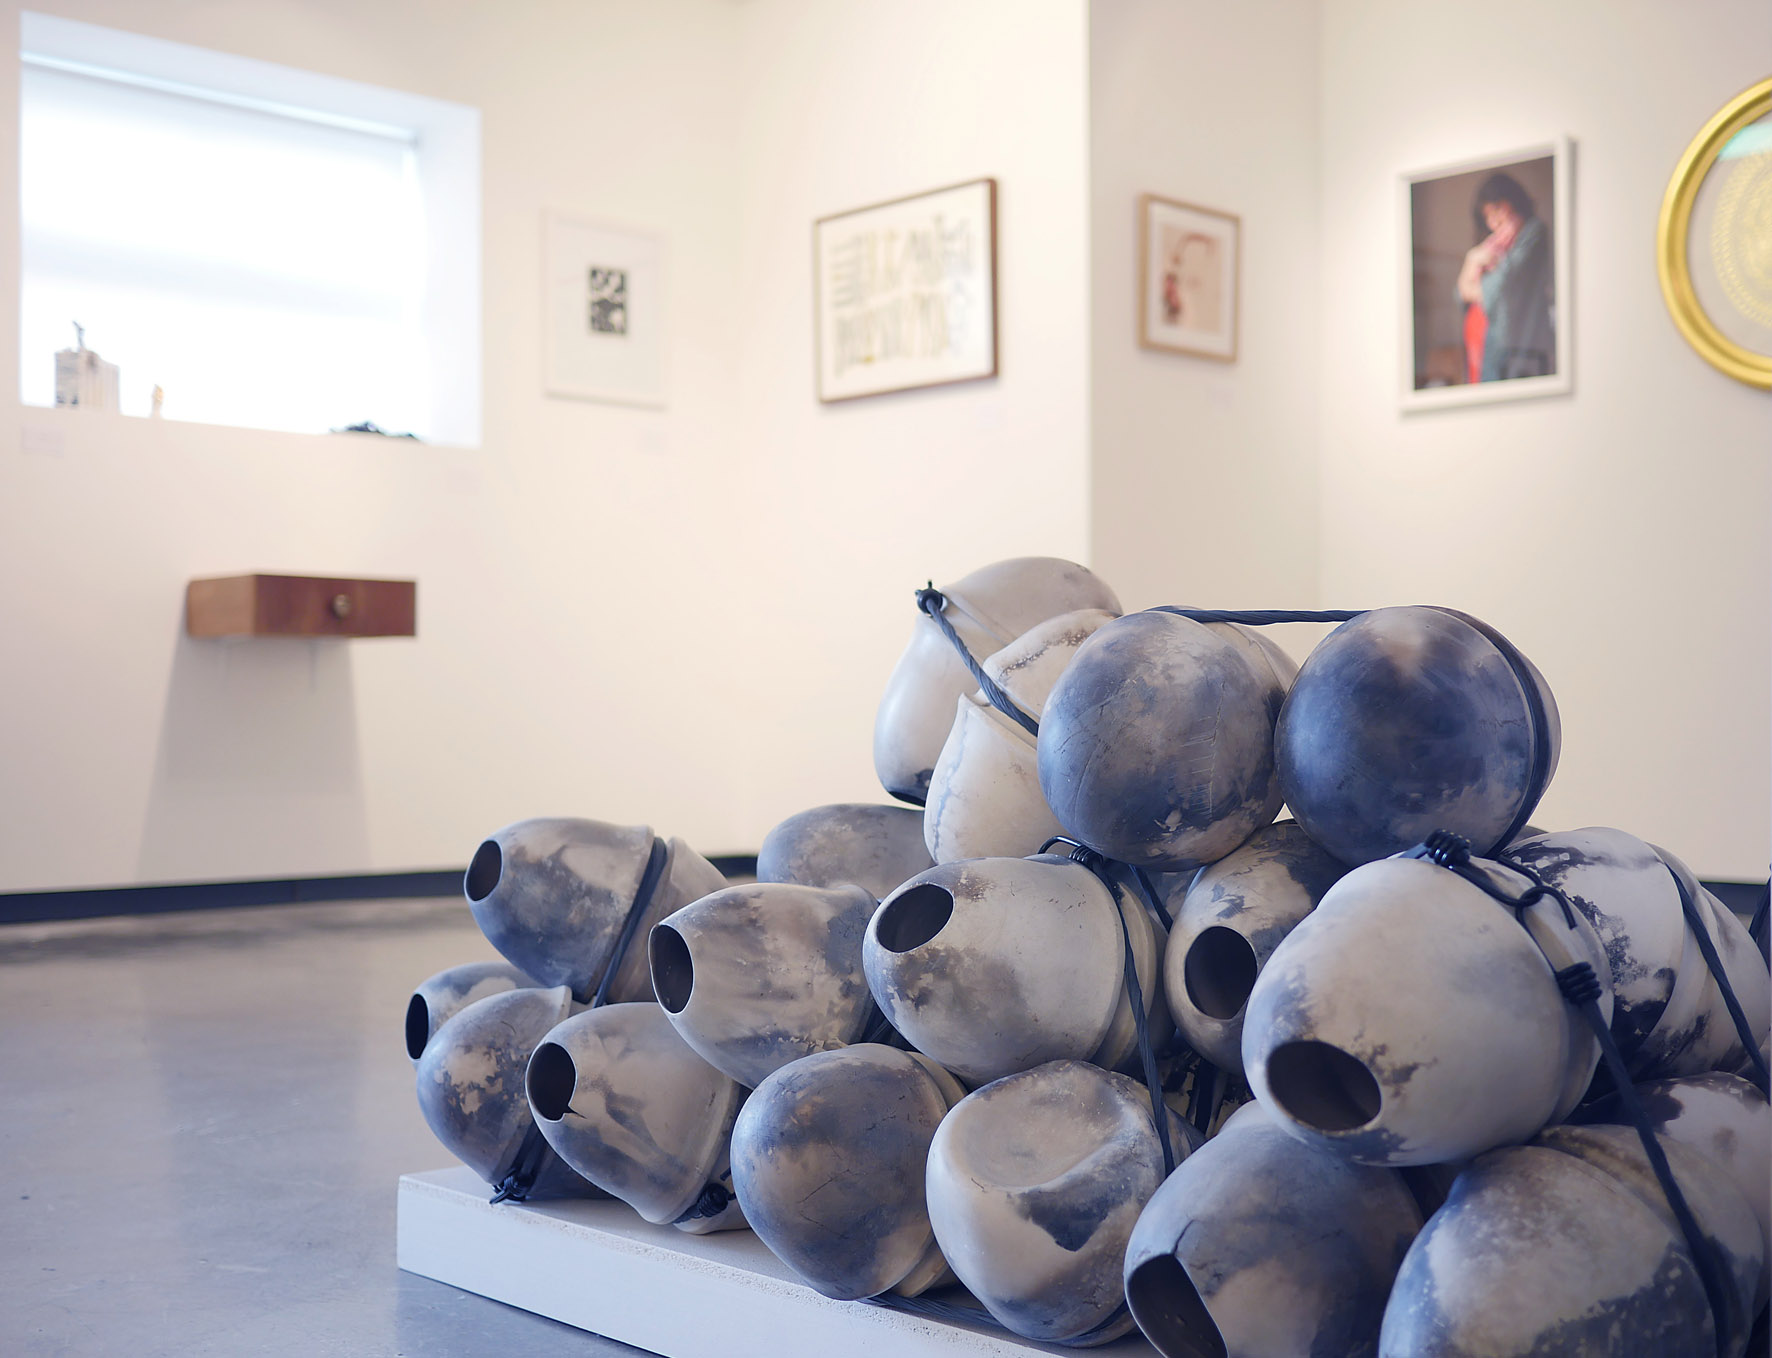 Exhibition view, Project AfterBirth, White Moose gallery, 2015, photo credit: Kris Jager